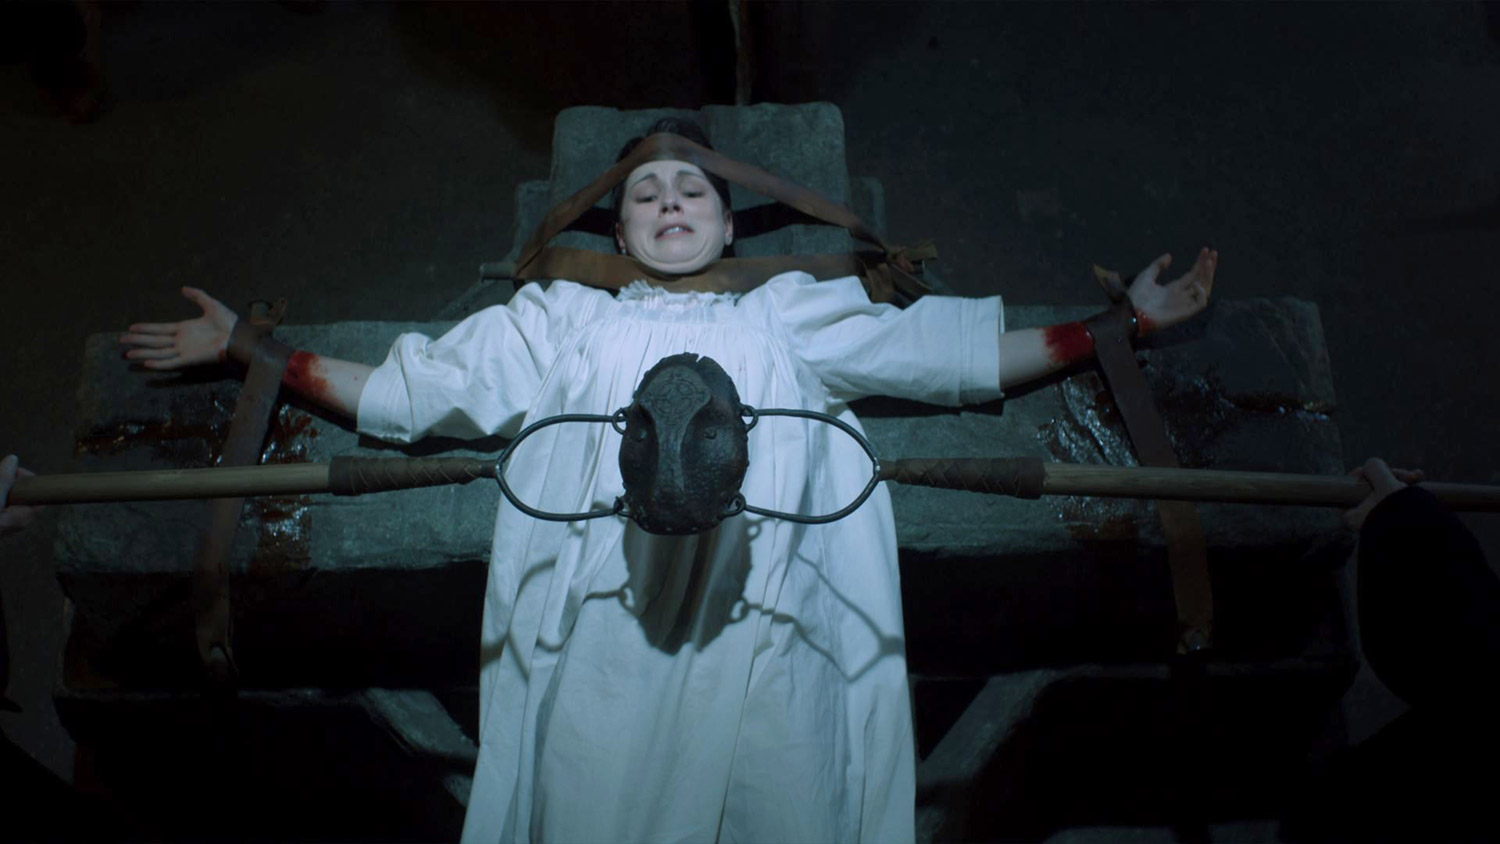 Canadian Horror Films - The Shrine, Sara on ceremonial table